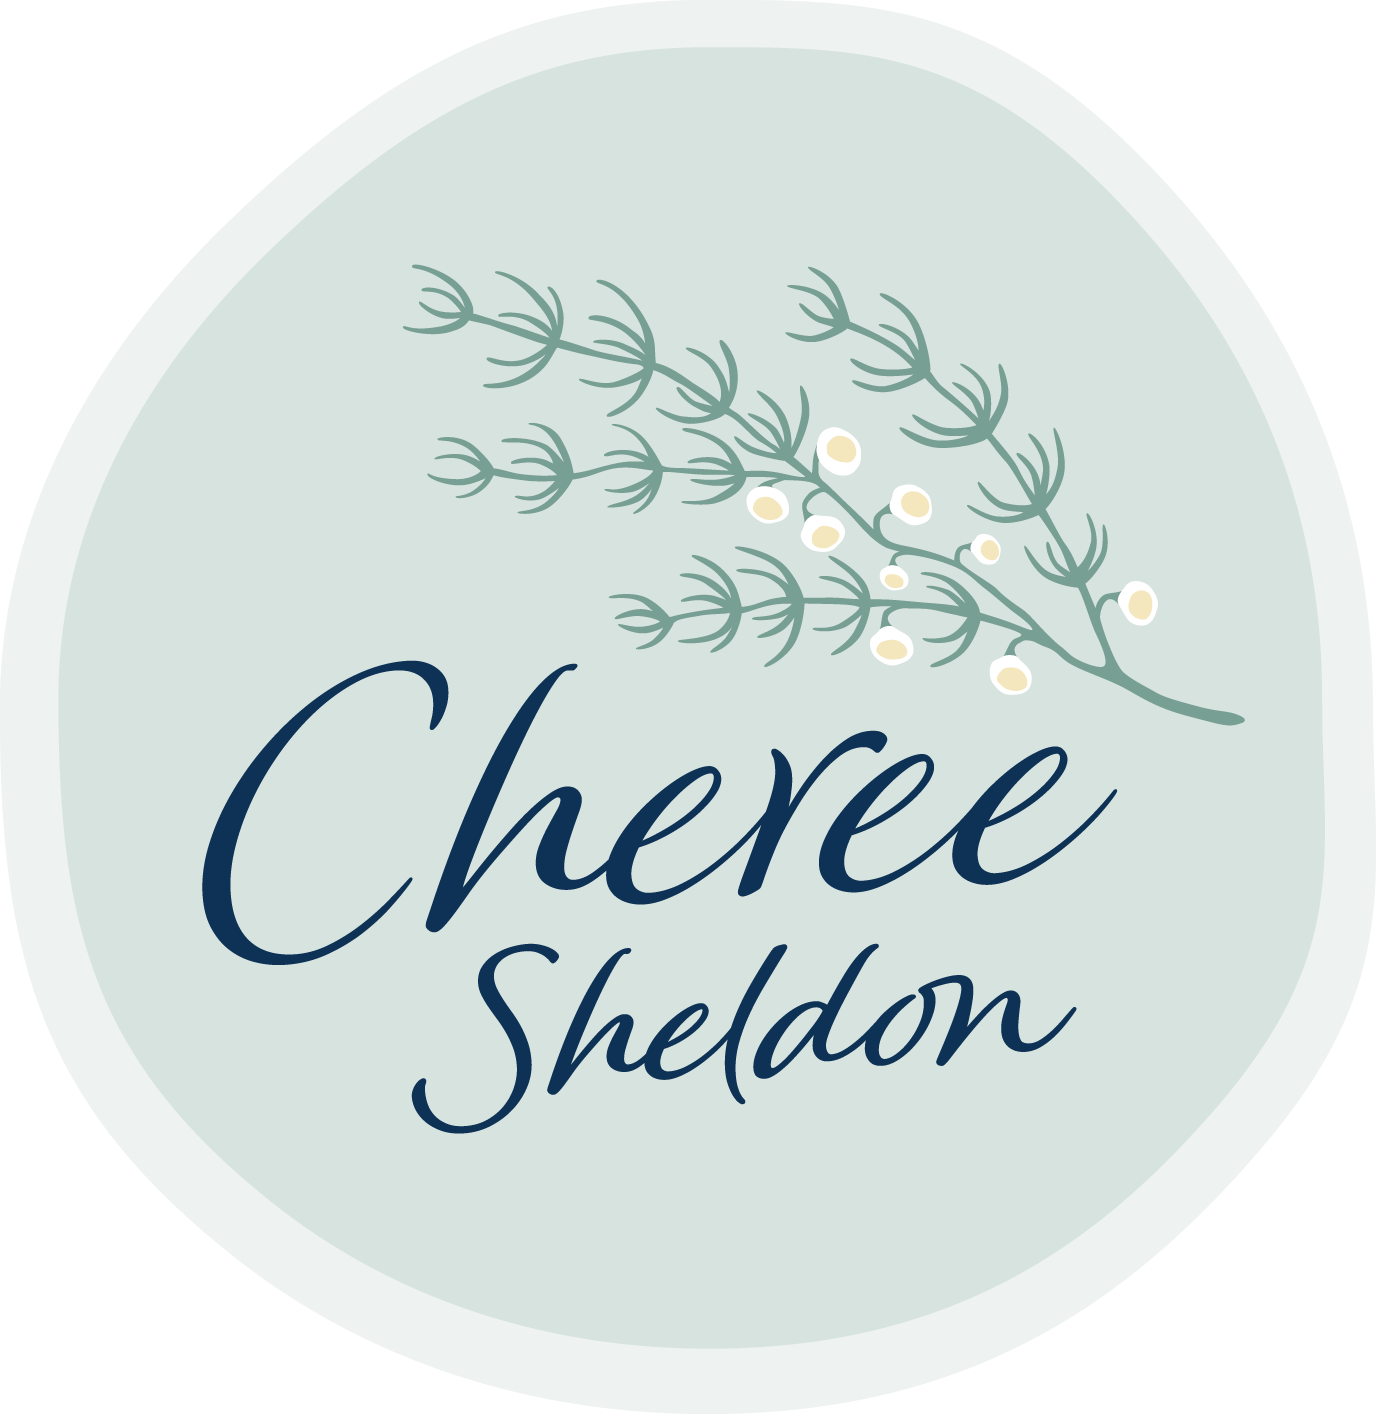 Cheree Sheldon